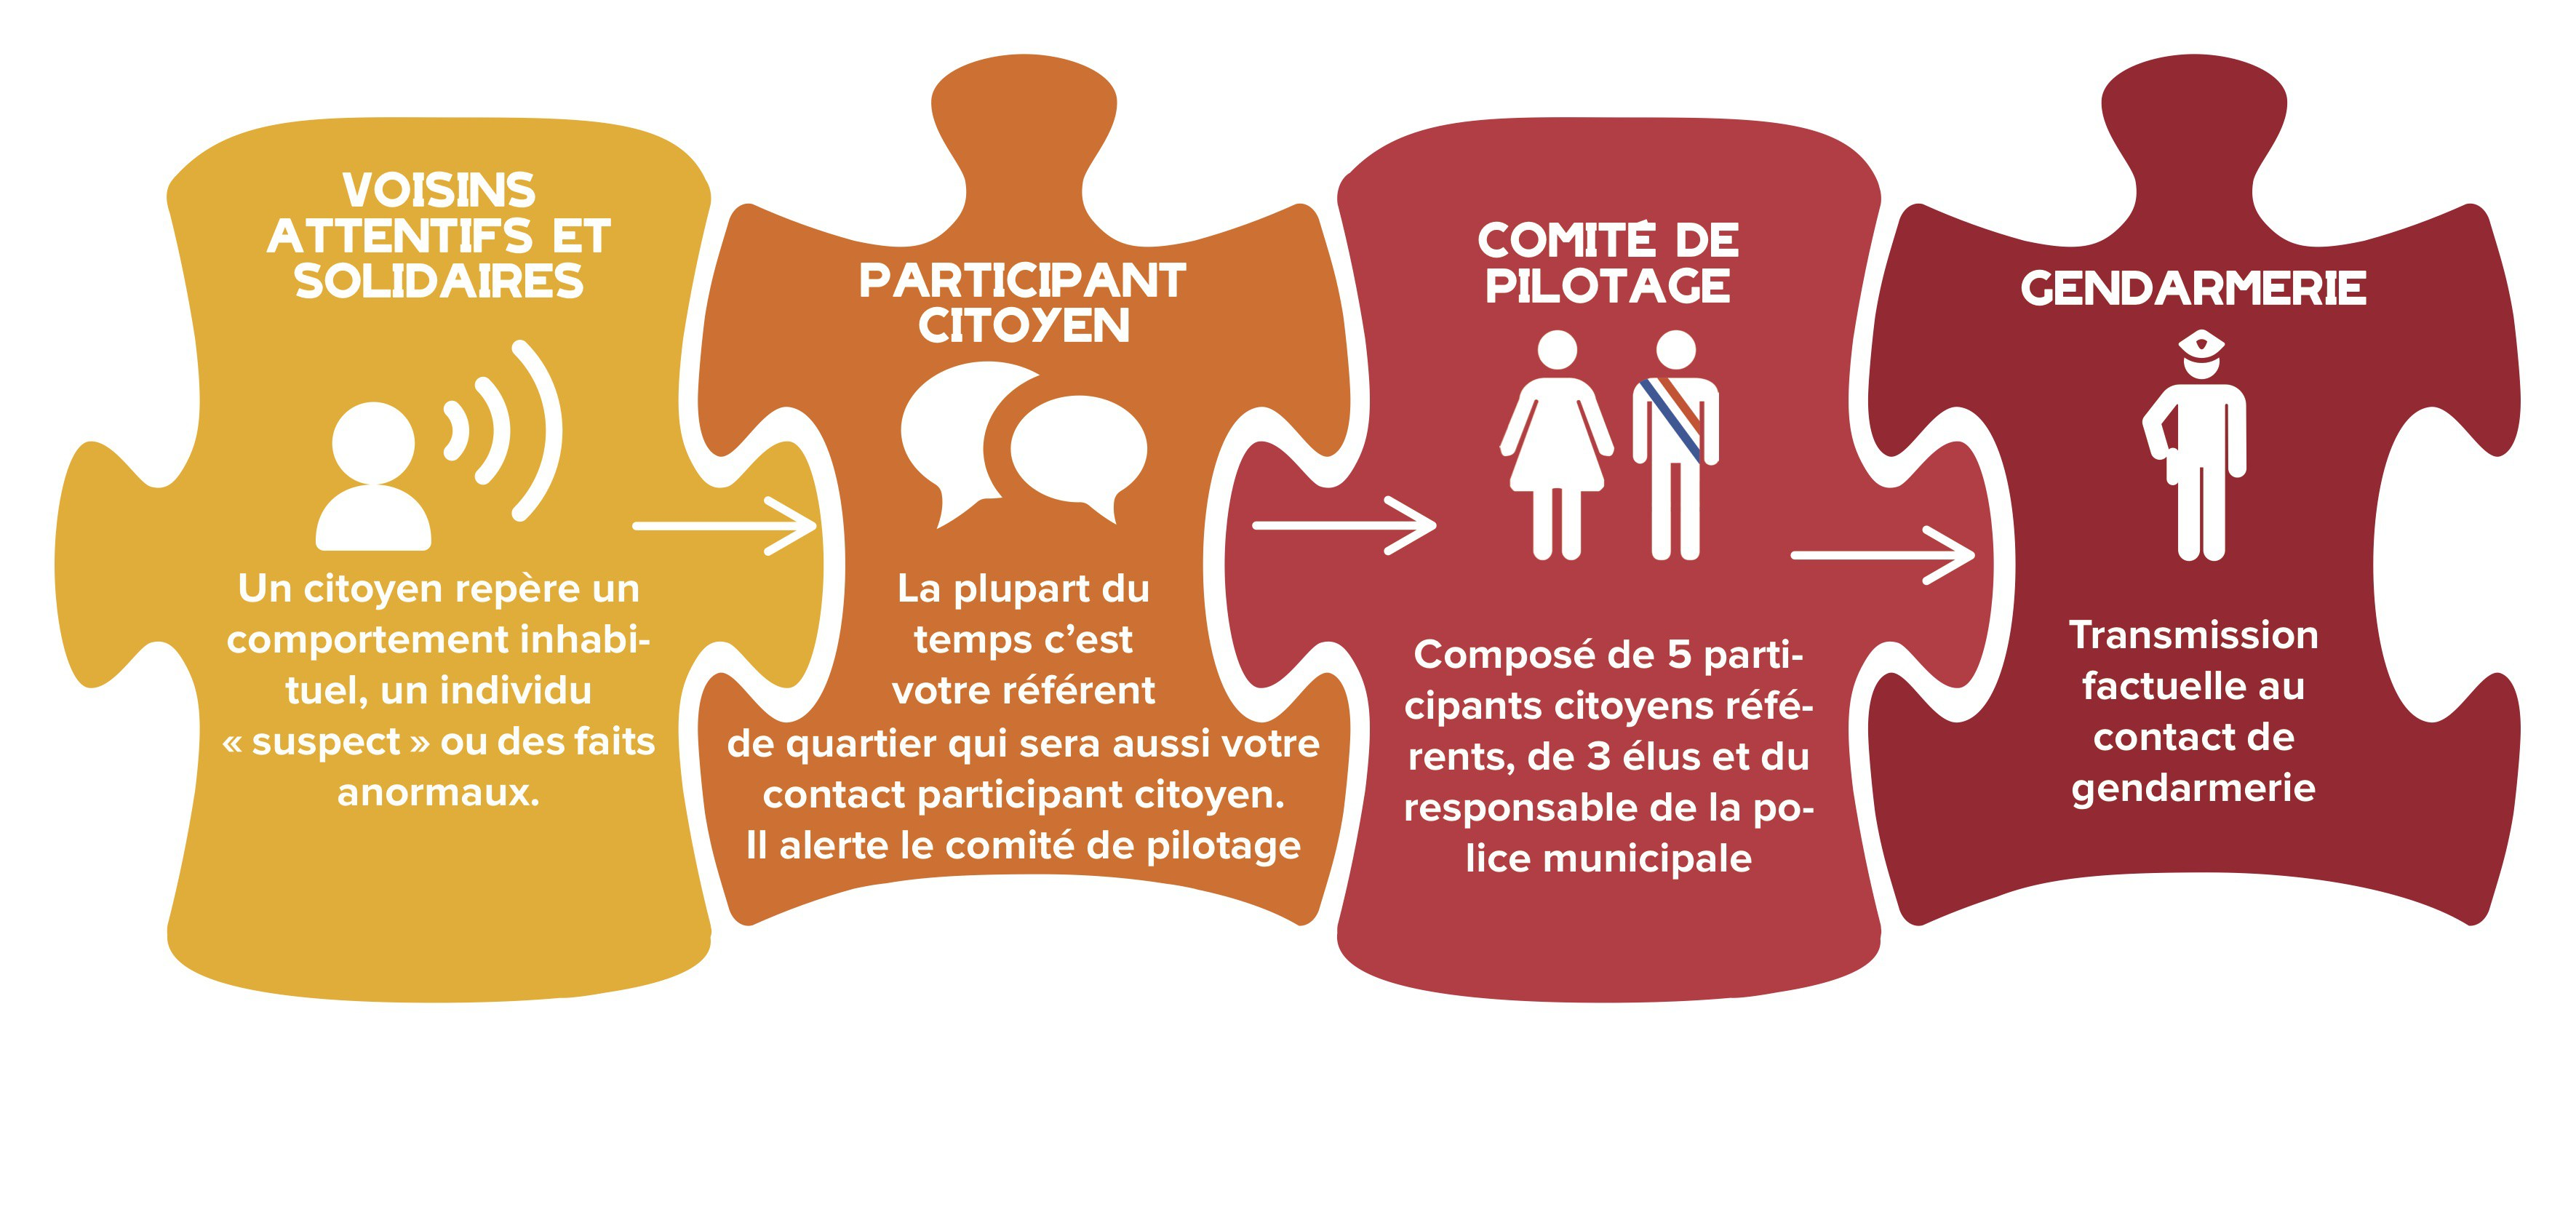 iconographie-participation-citoyenne